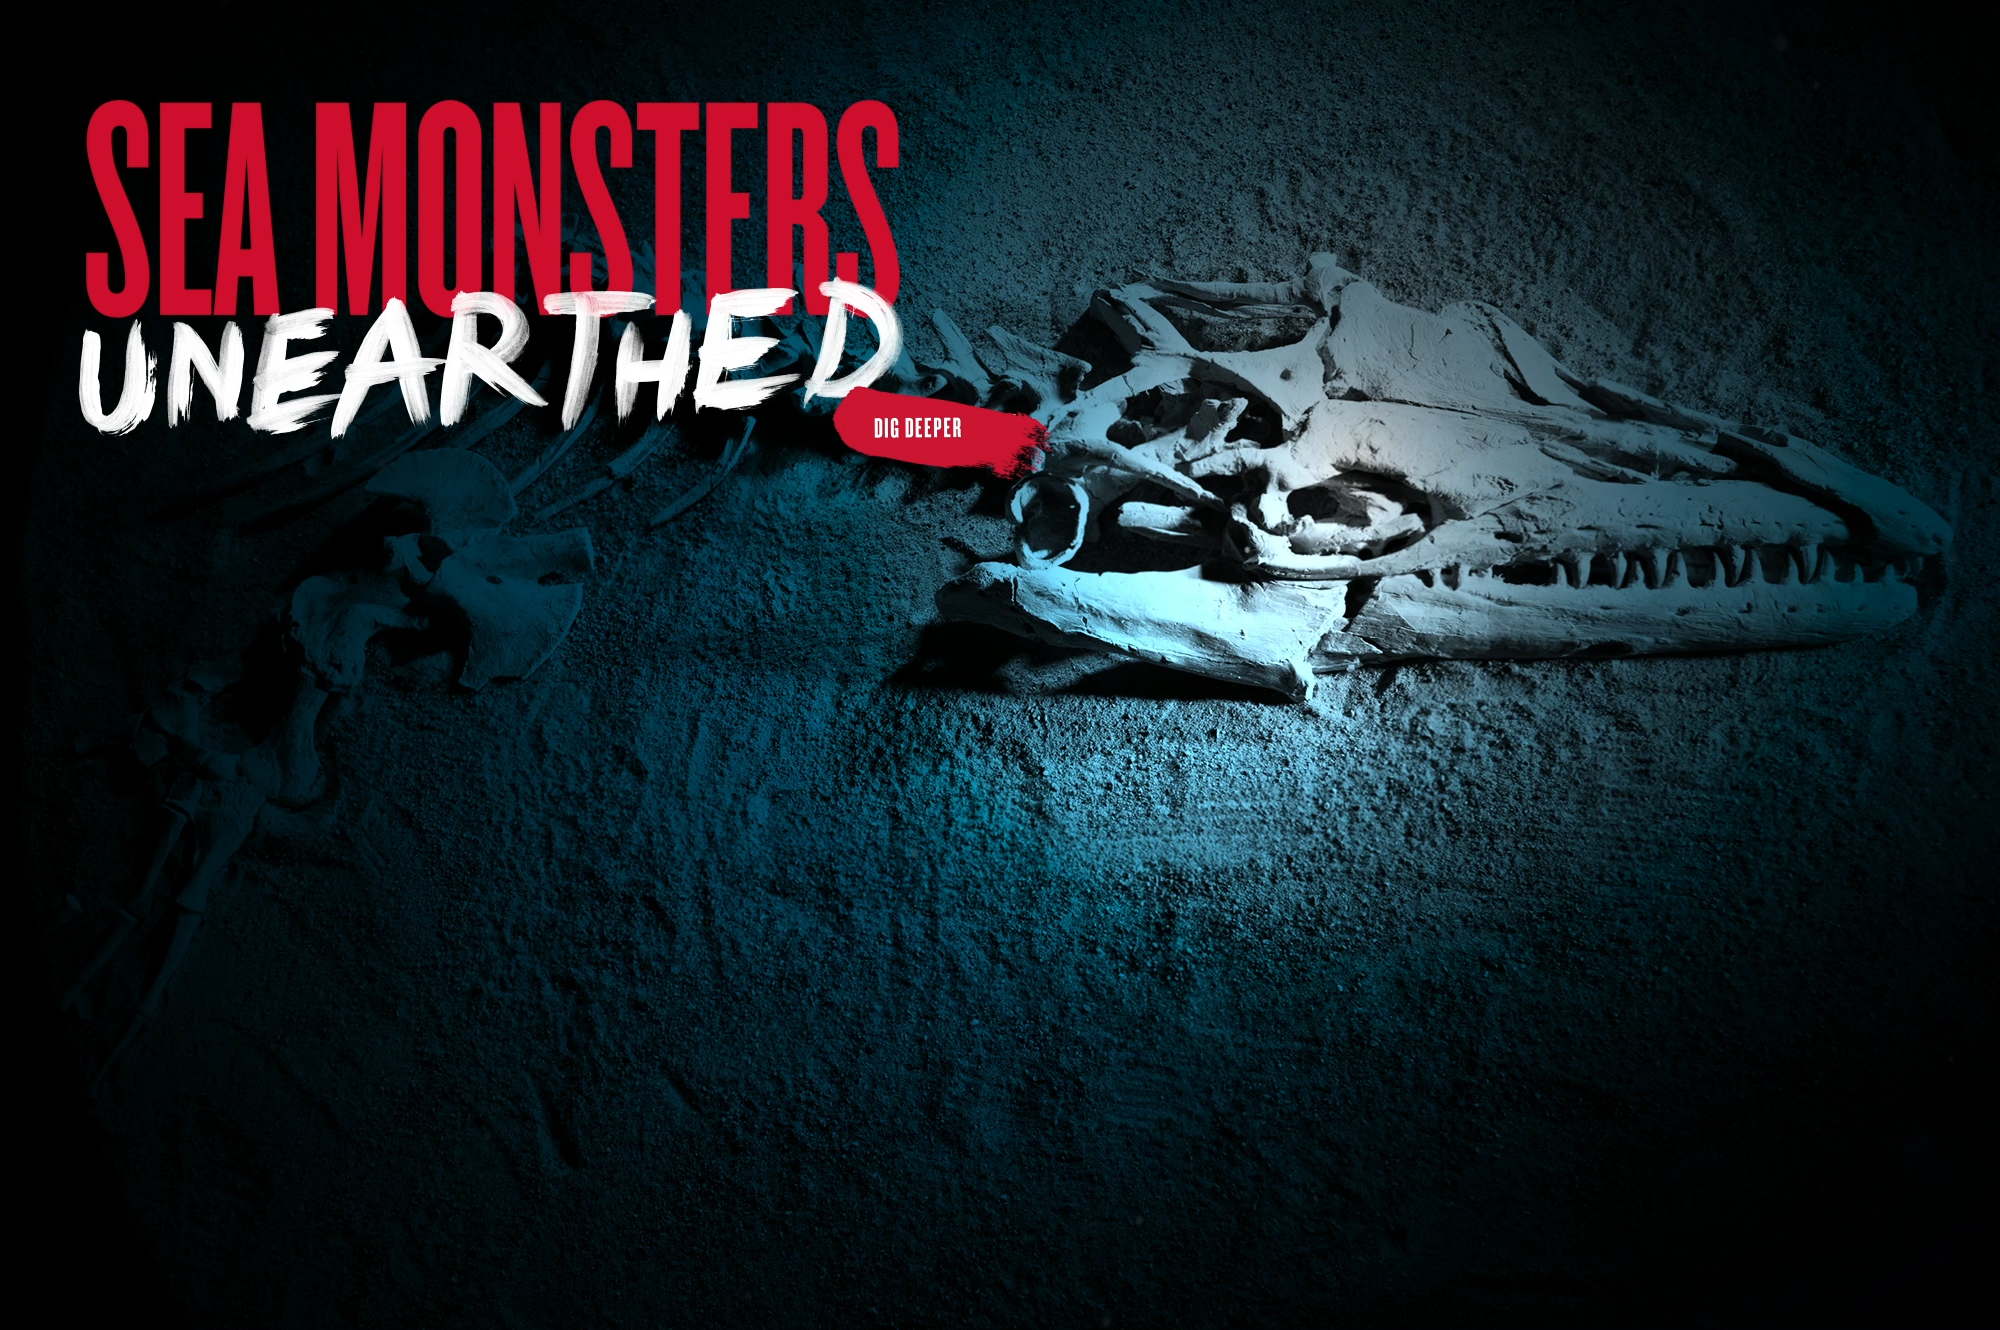 Seamonsters Unearthed